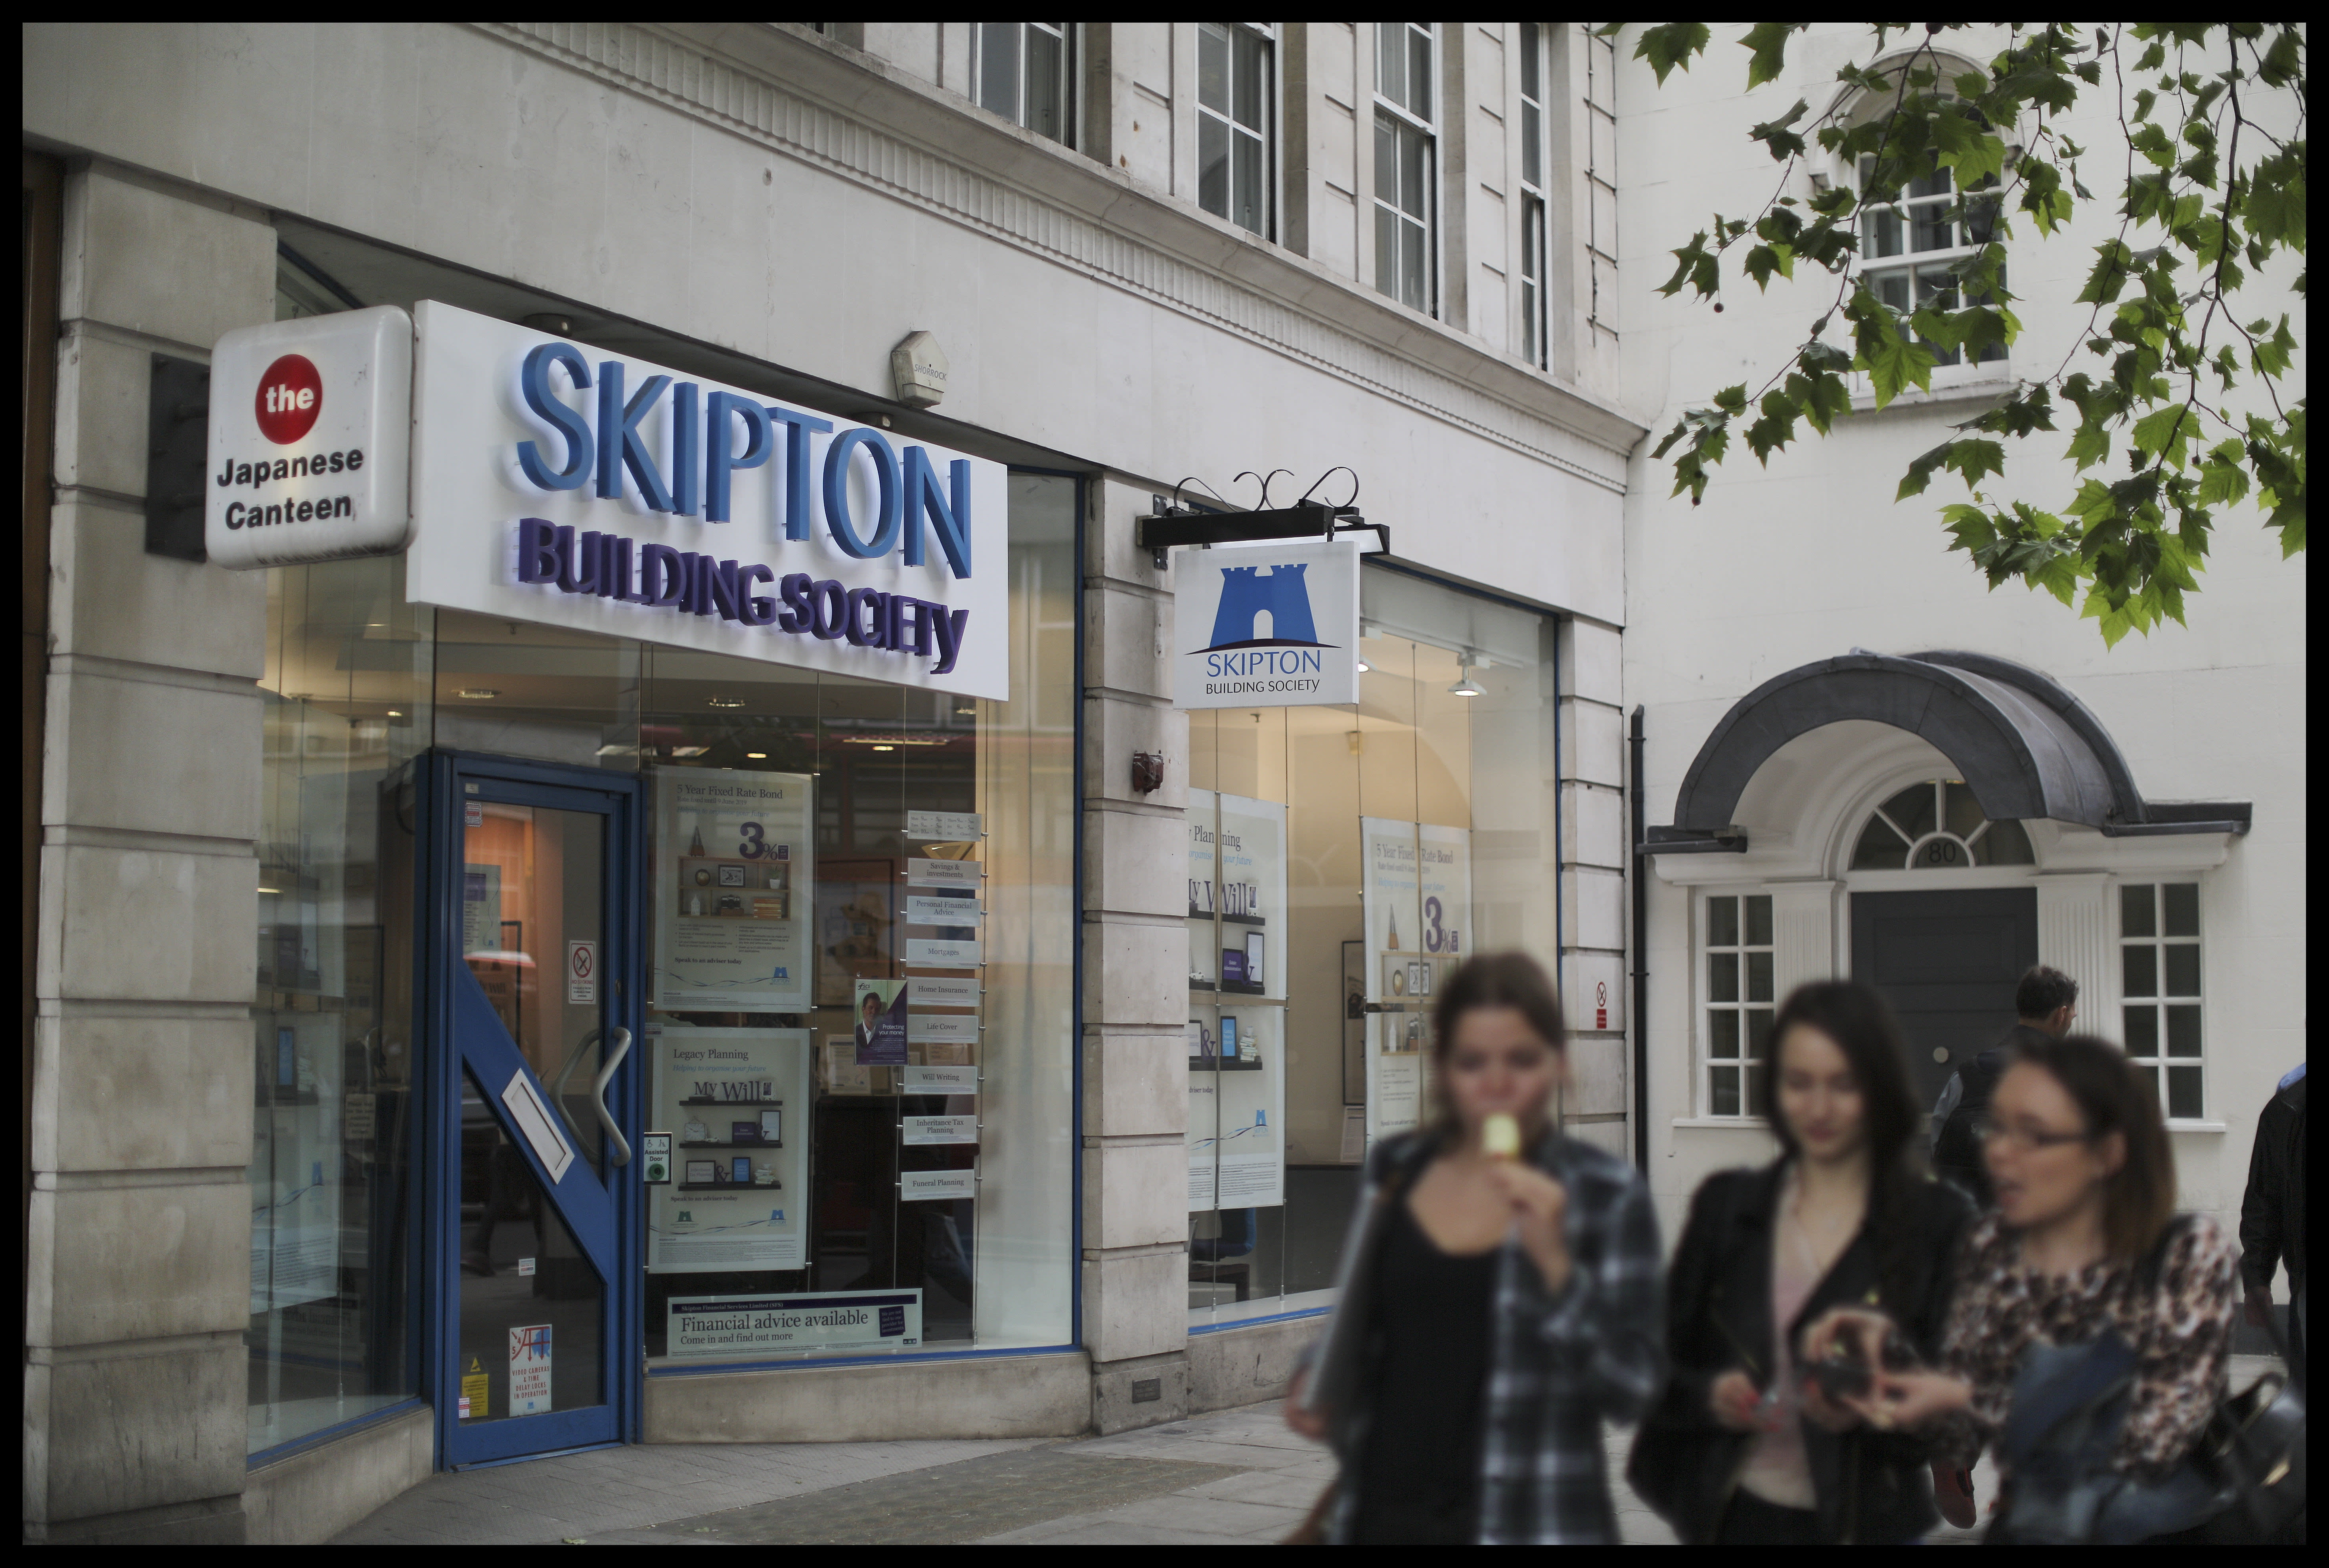 Skipton changes criteria for contractors